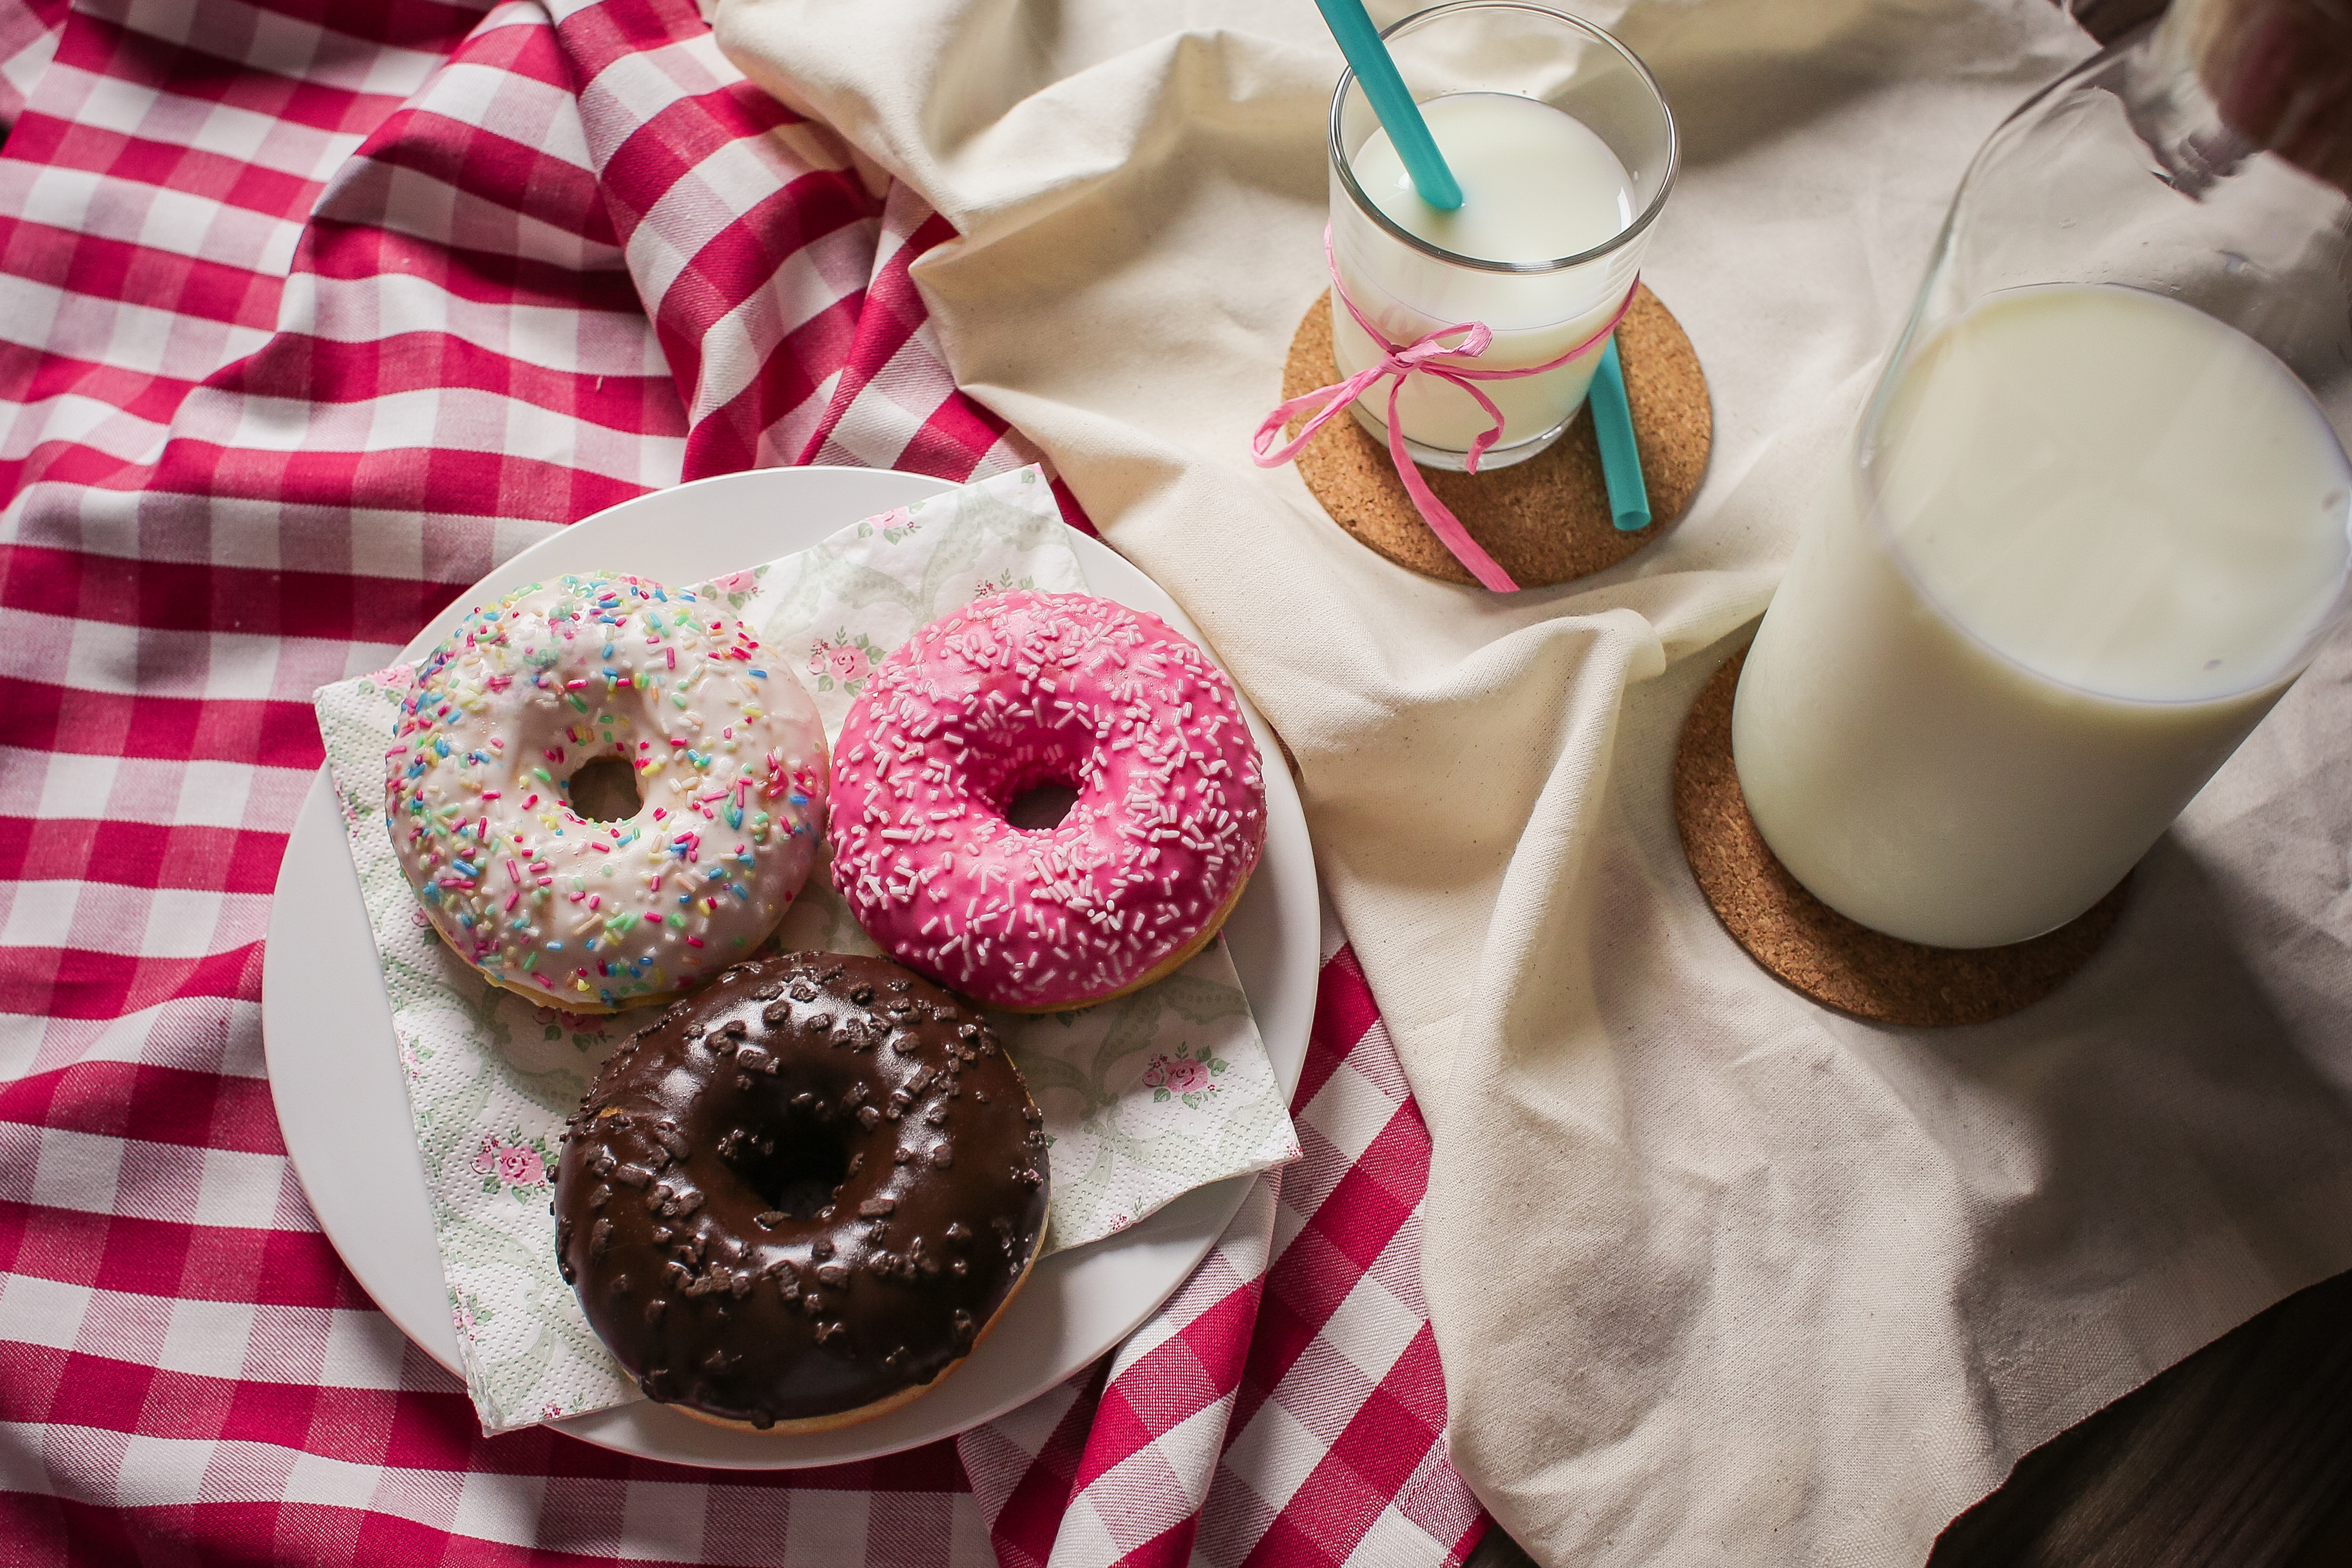 Download Yummy Donuts and Milk FREE Stock Photo